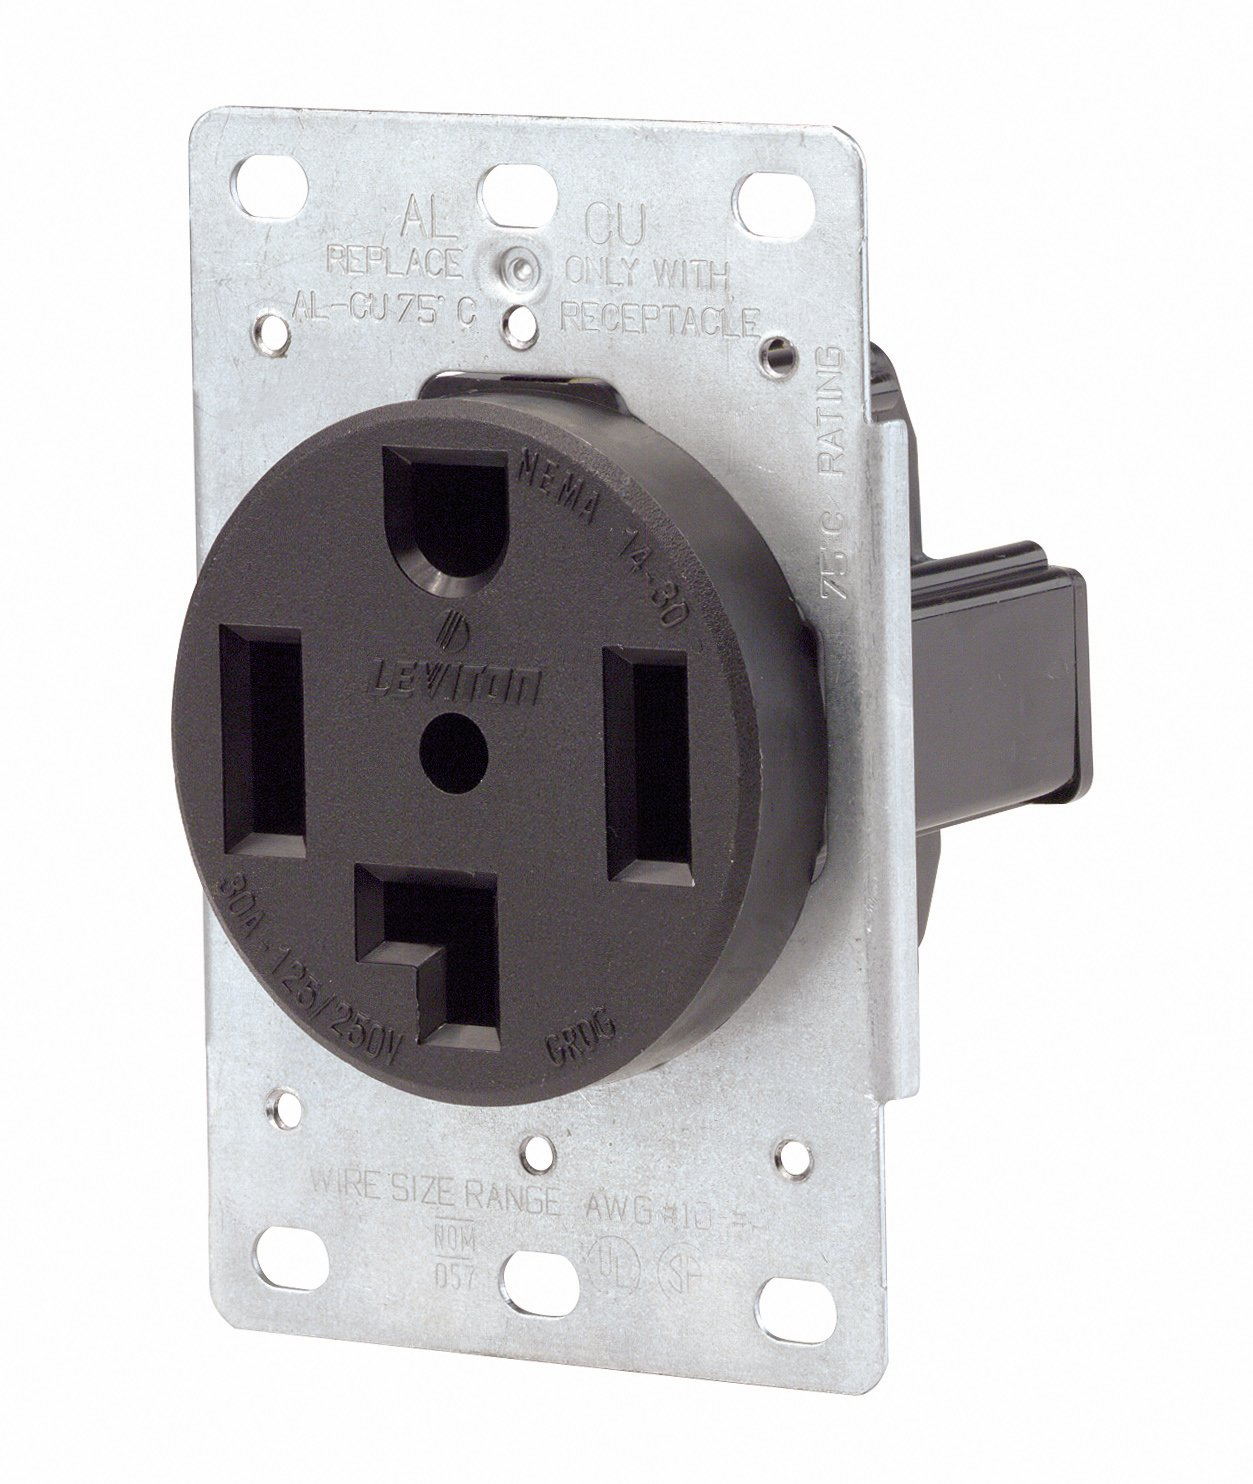 Leviton 071 00278 000 4 Wire 30 Amp 250 Volt Flush Mount Dryer Wiring Also Electrical Circuit Breaker Panel Box Together With Receptacle Range Plug Receptacles